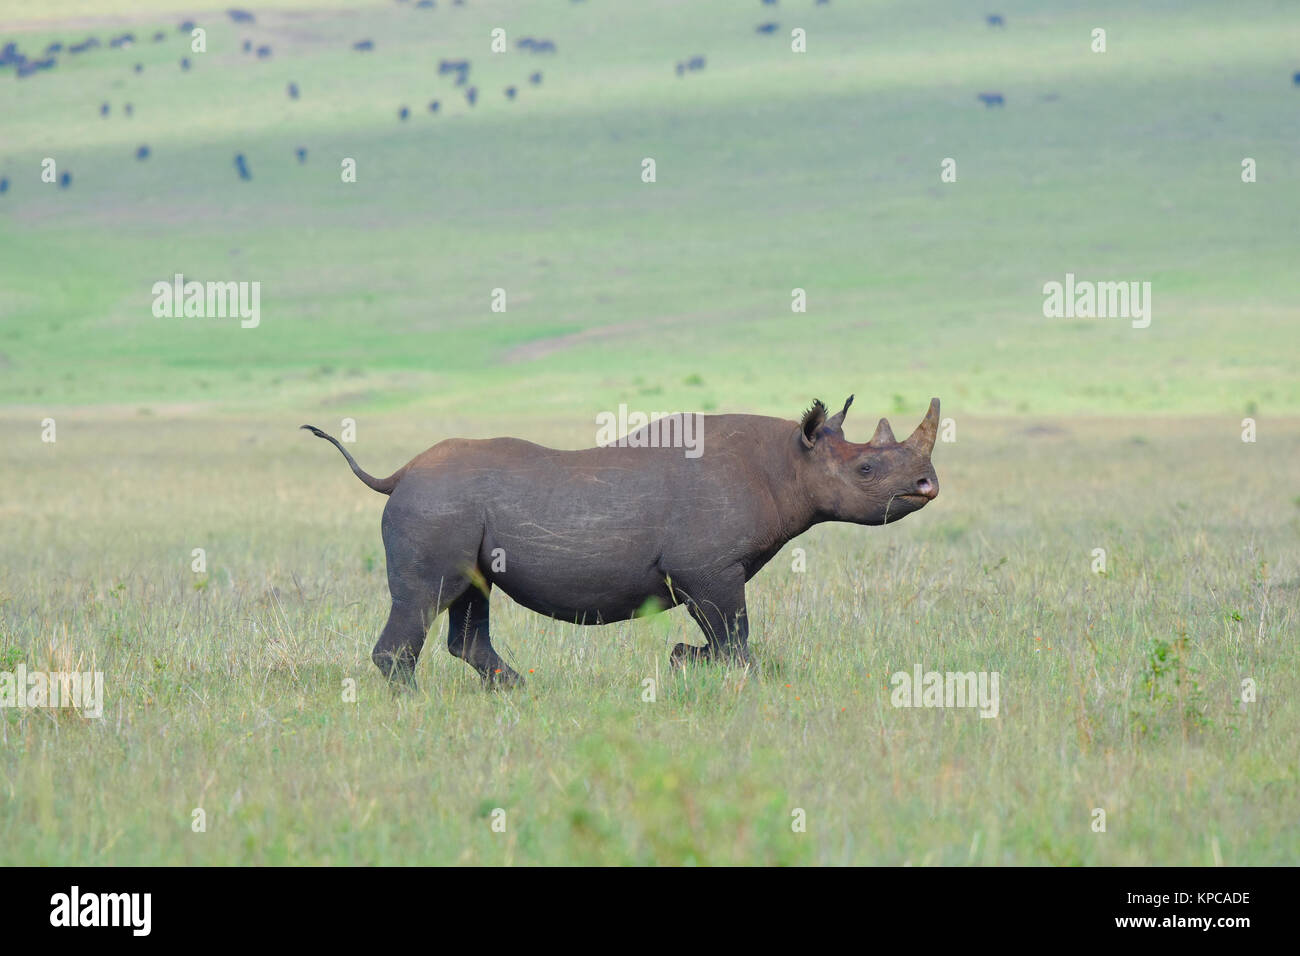 Kenya is a prime tourist destination in East Africa. Famous for wildlife and natural beauty. Black rhino - Stock Image